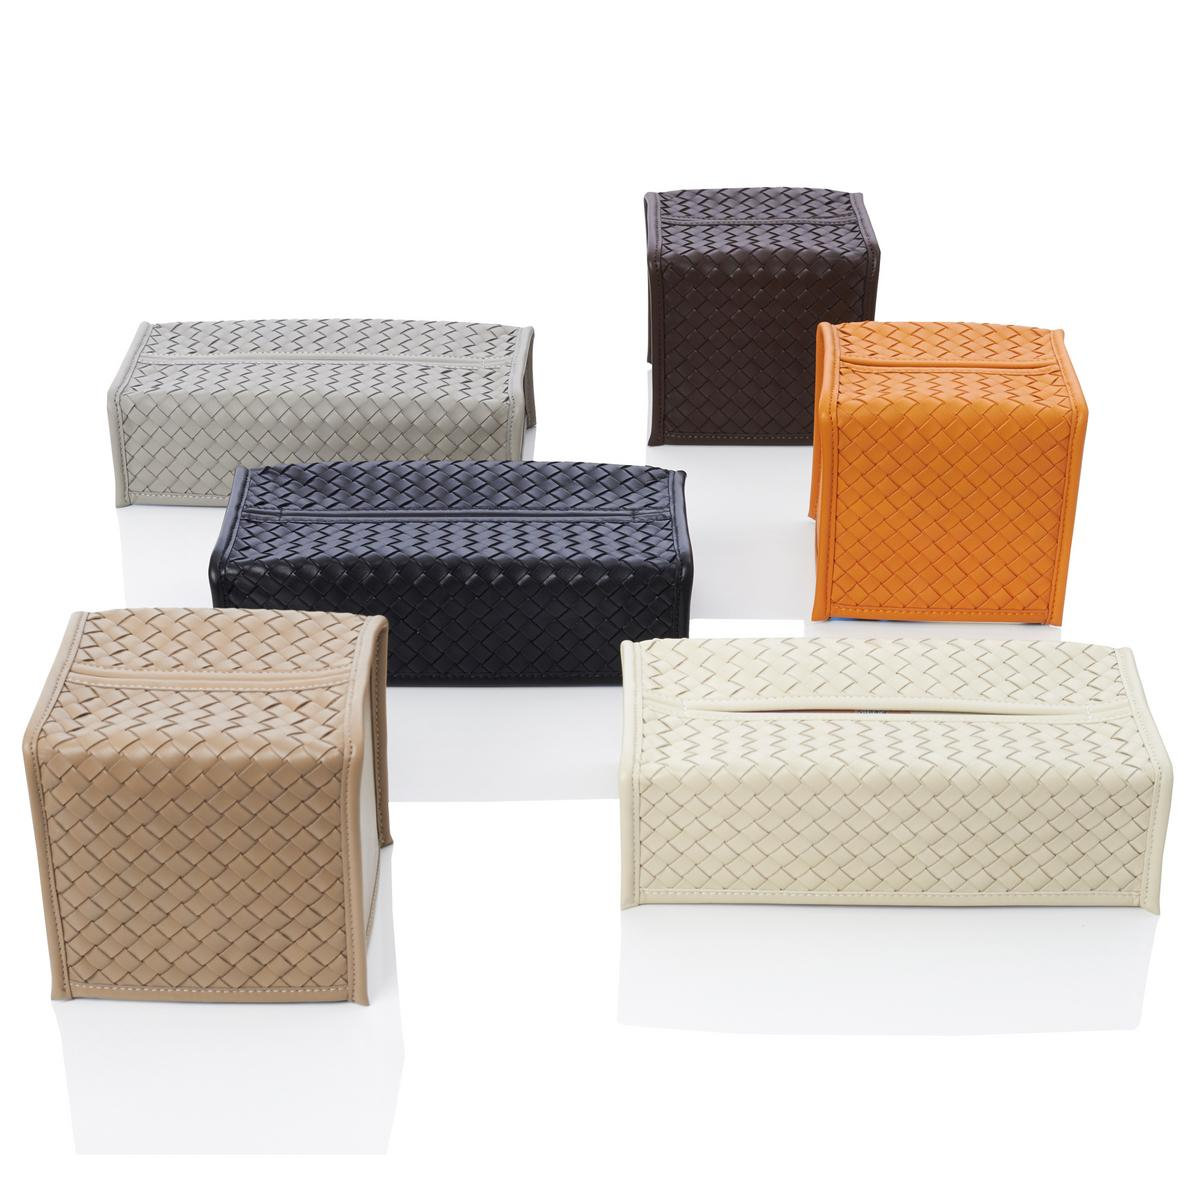 Riviere Milano Tissue Box Covers